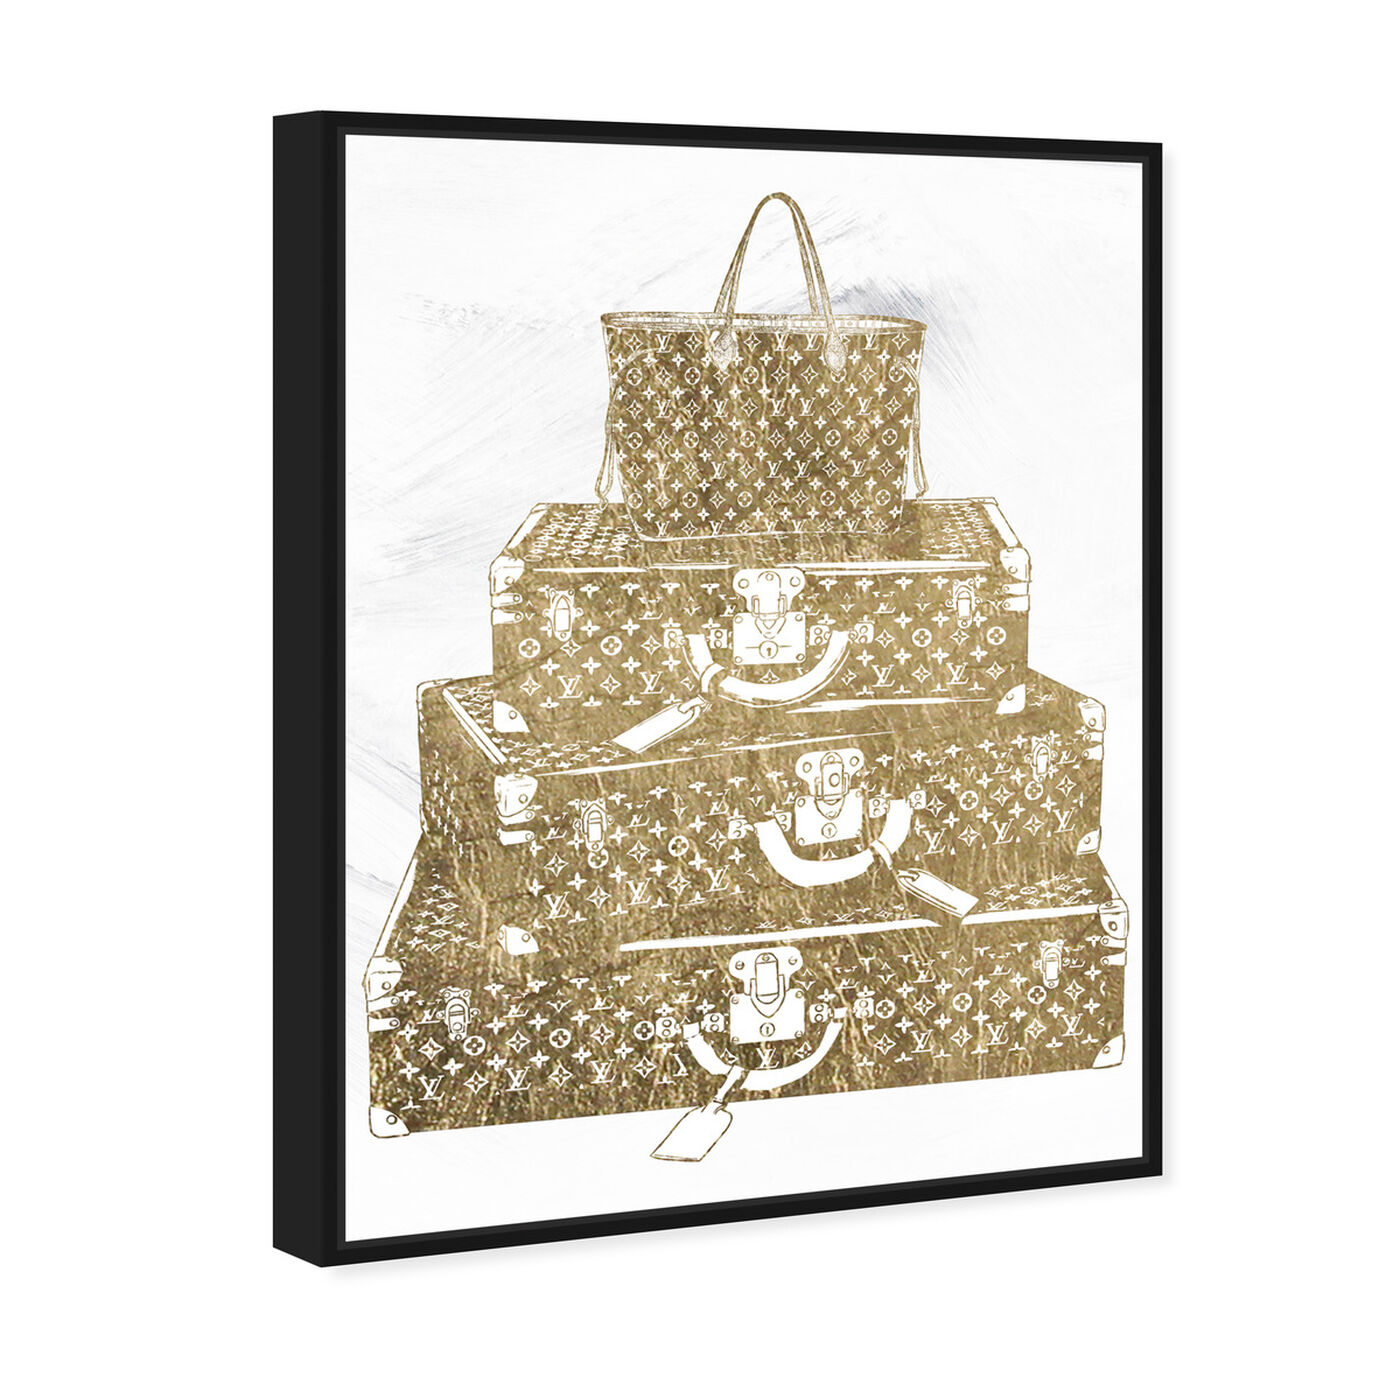 Angled view of Traveling the Globe featuring fashion and glam and travel essentials art.